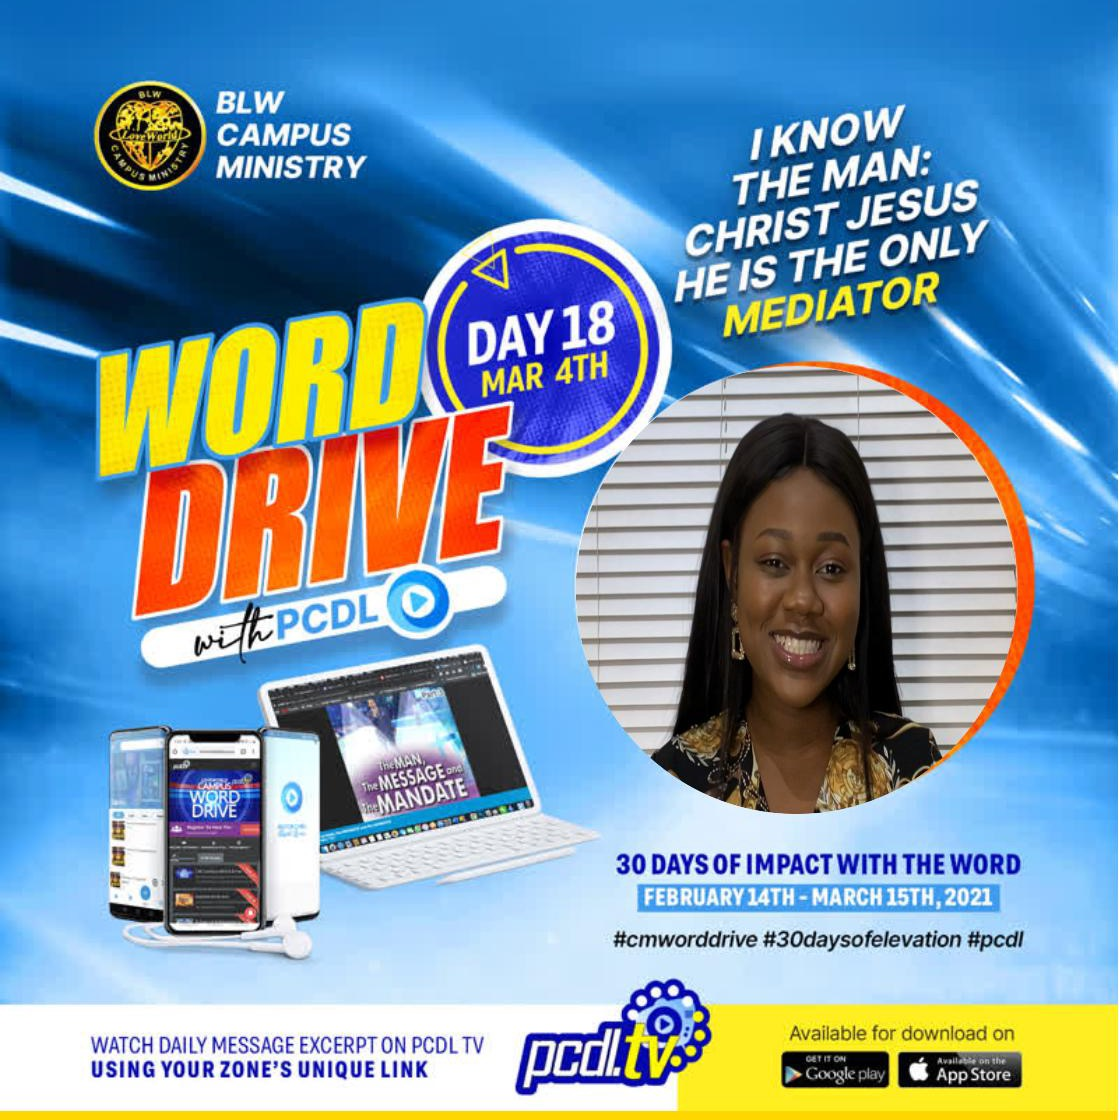 #WordDrive #cmworddrive #30daysofelevation #Pcdl #